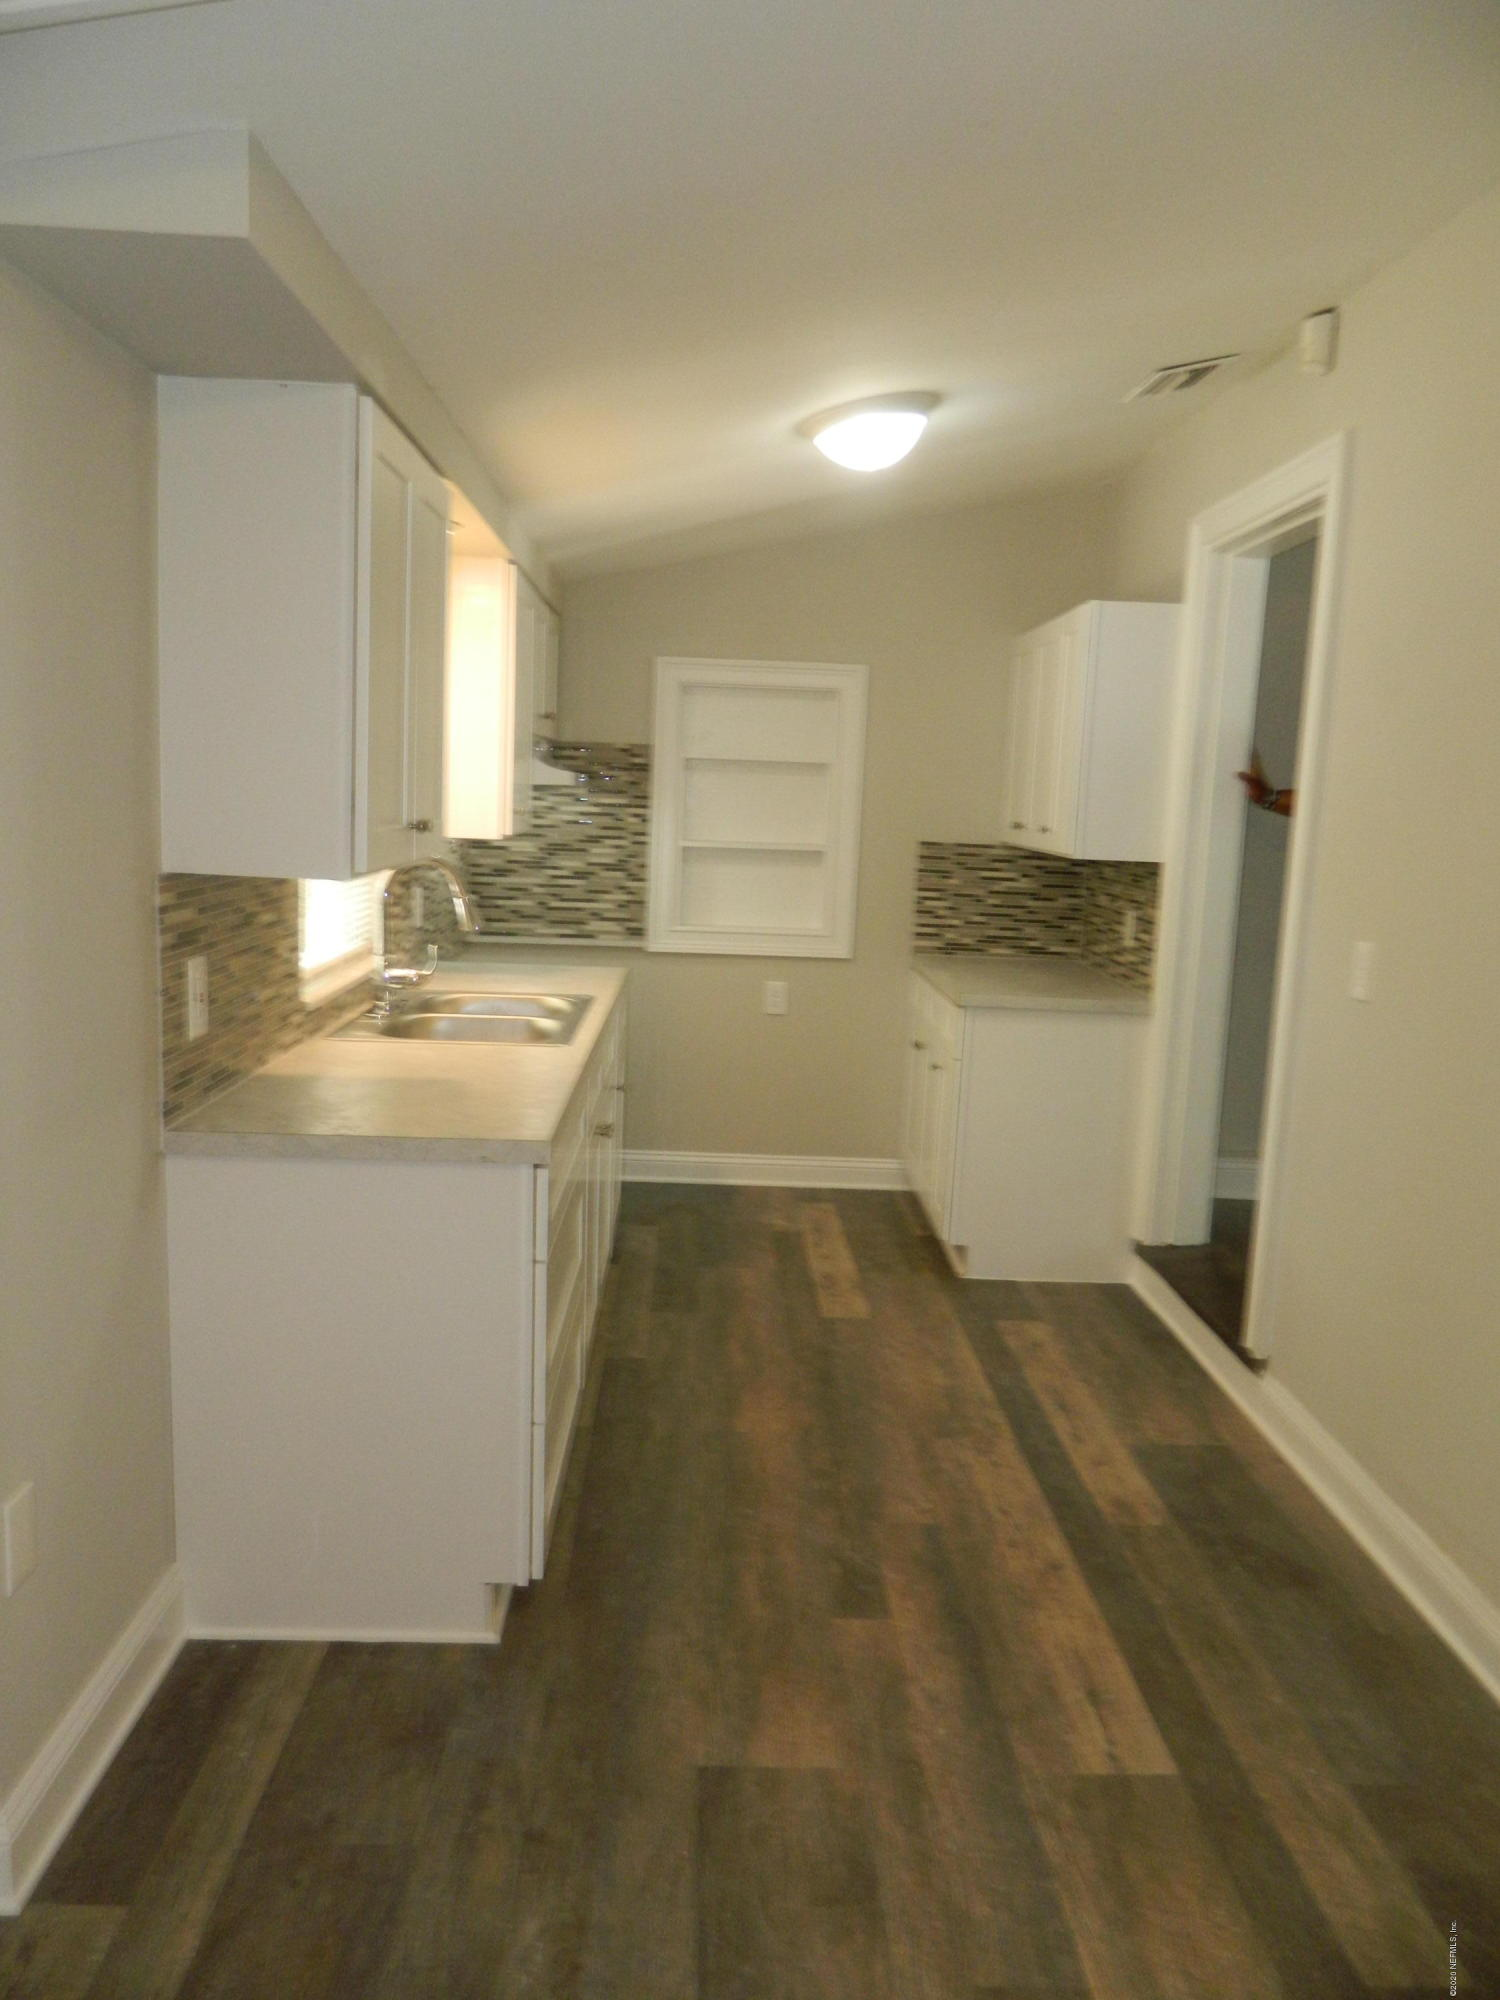 244 48TH, JACKSONVILLE, FLORIDA 32208, 3 Bedrooms Bedrooms, ,1 BathroomBathrooms,Residential,For sale,48TH,1053552